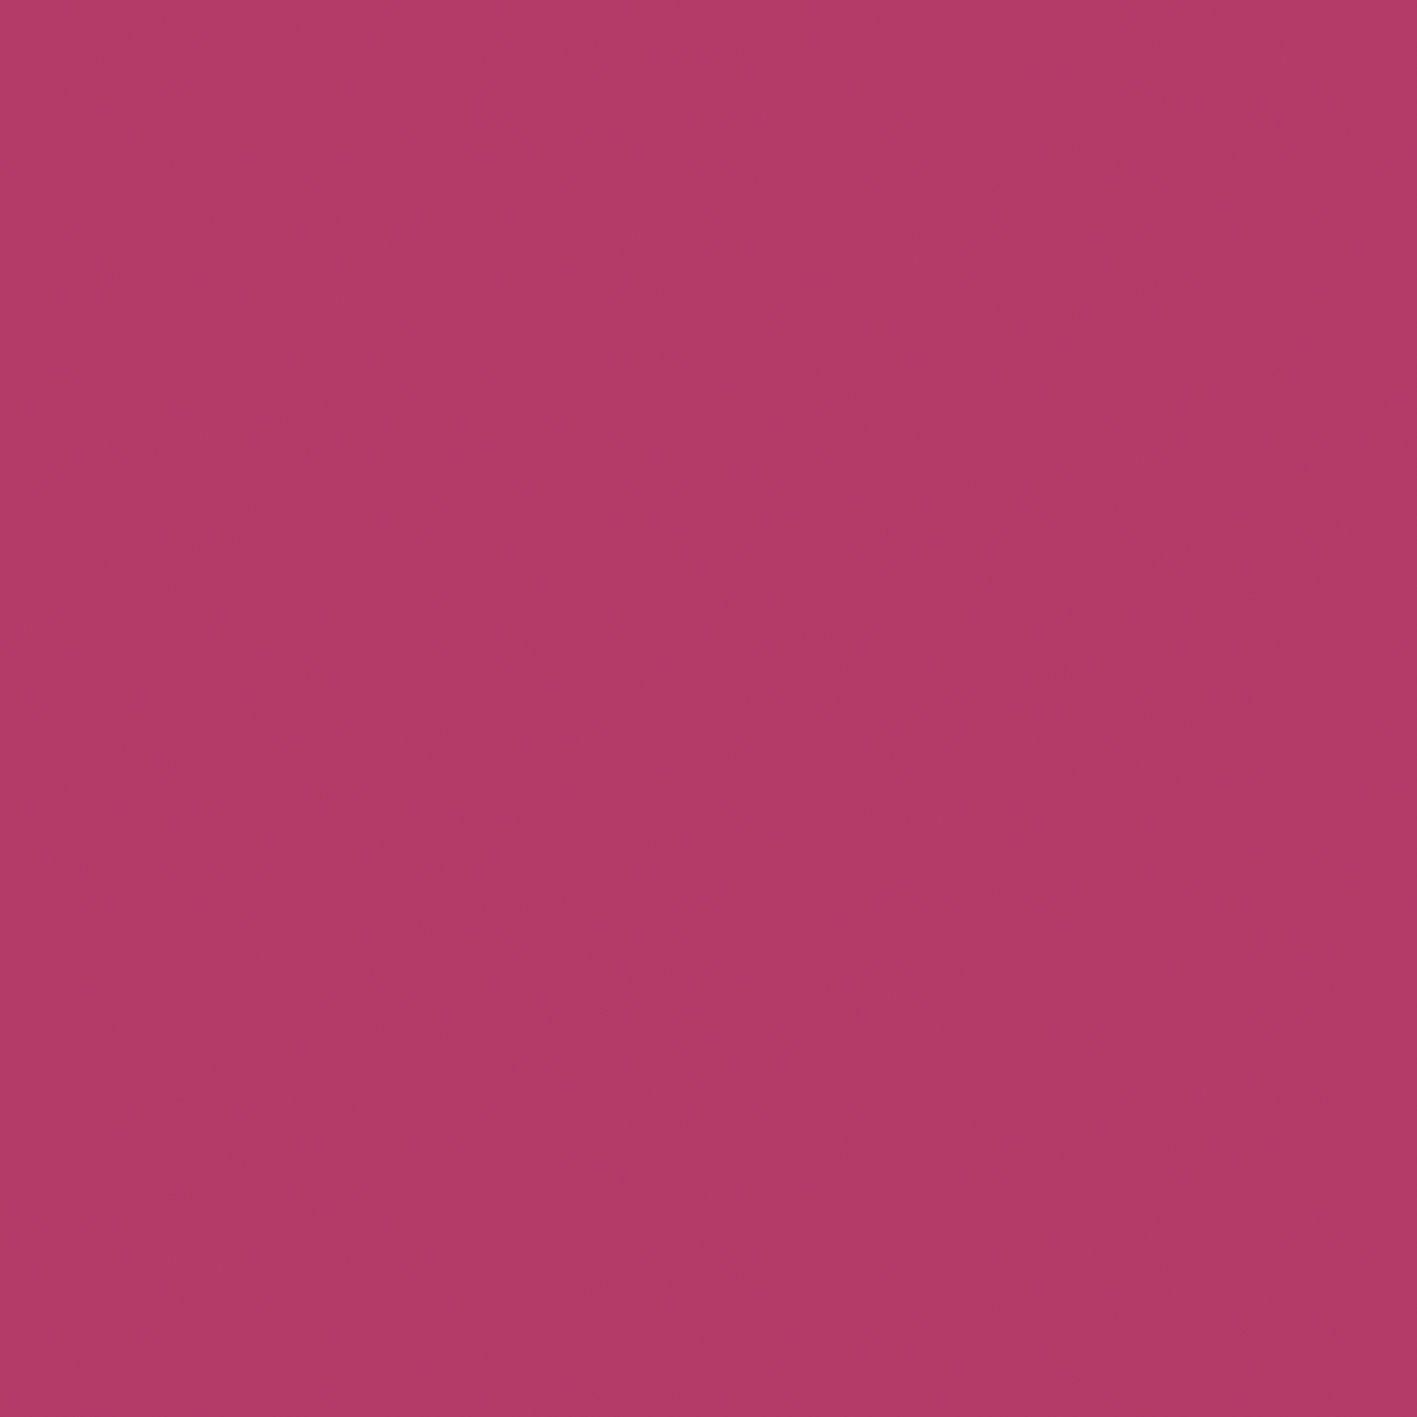 Buildtech 2.0 Bold Colors Fuchsia Matte 6mm 160 x 160